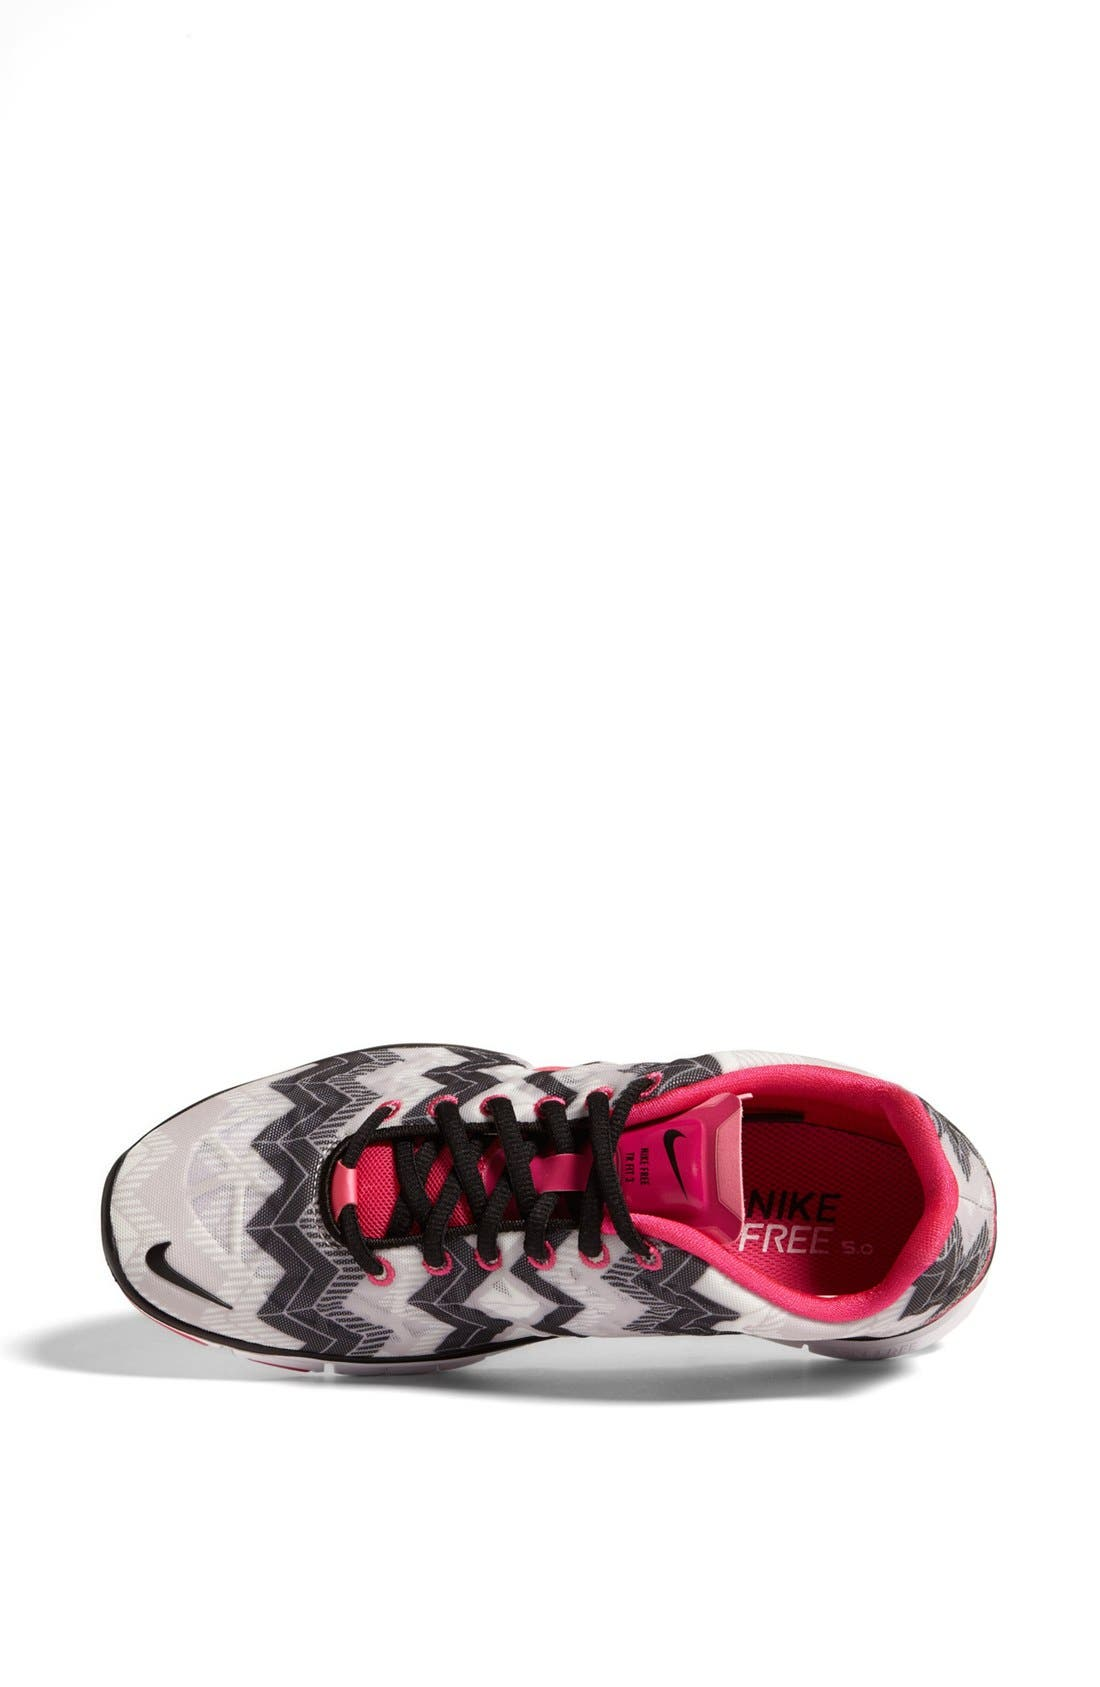 Alternate Image 3  - Nike 'Free TR Fit 3 Print' Training Shoe (Women)